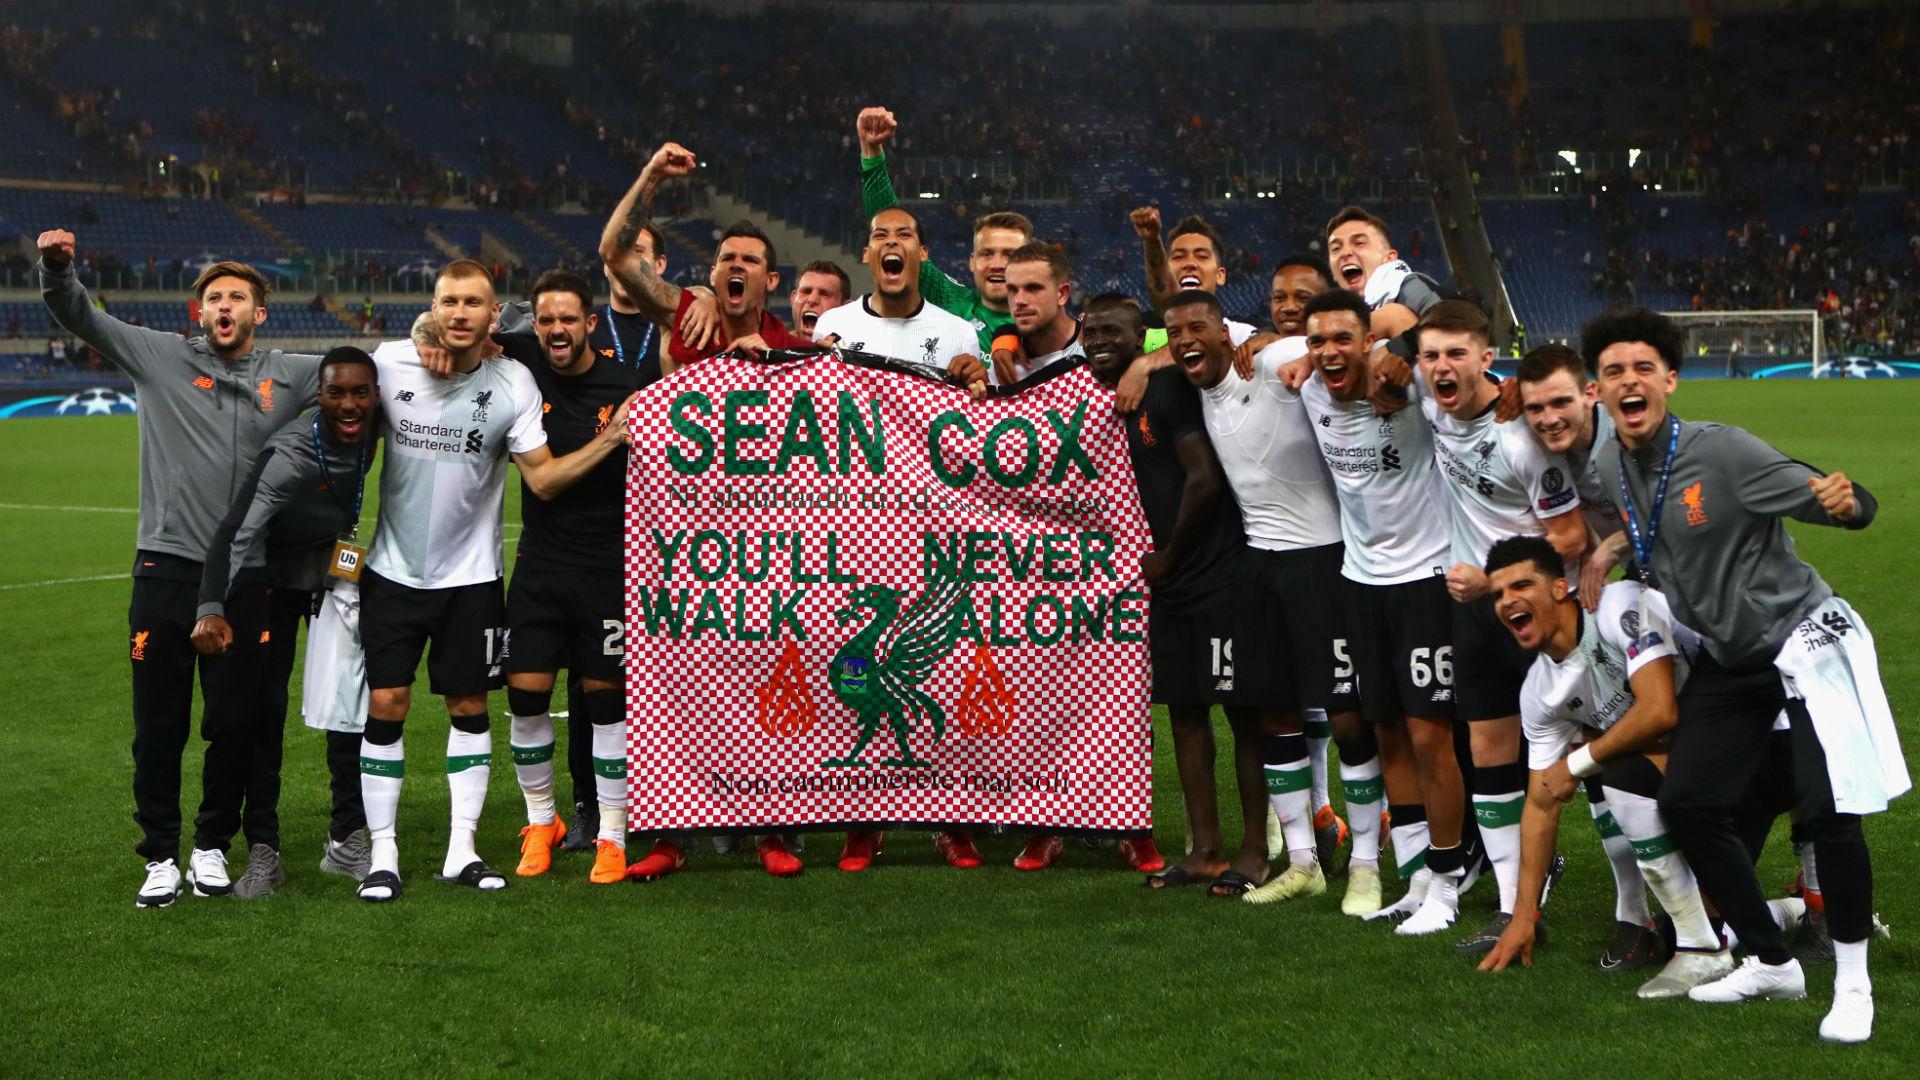 Liverpool players hold a banner in tribute to injured fan Sean Cox